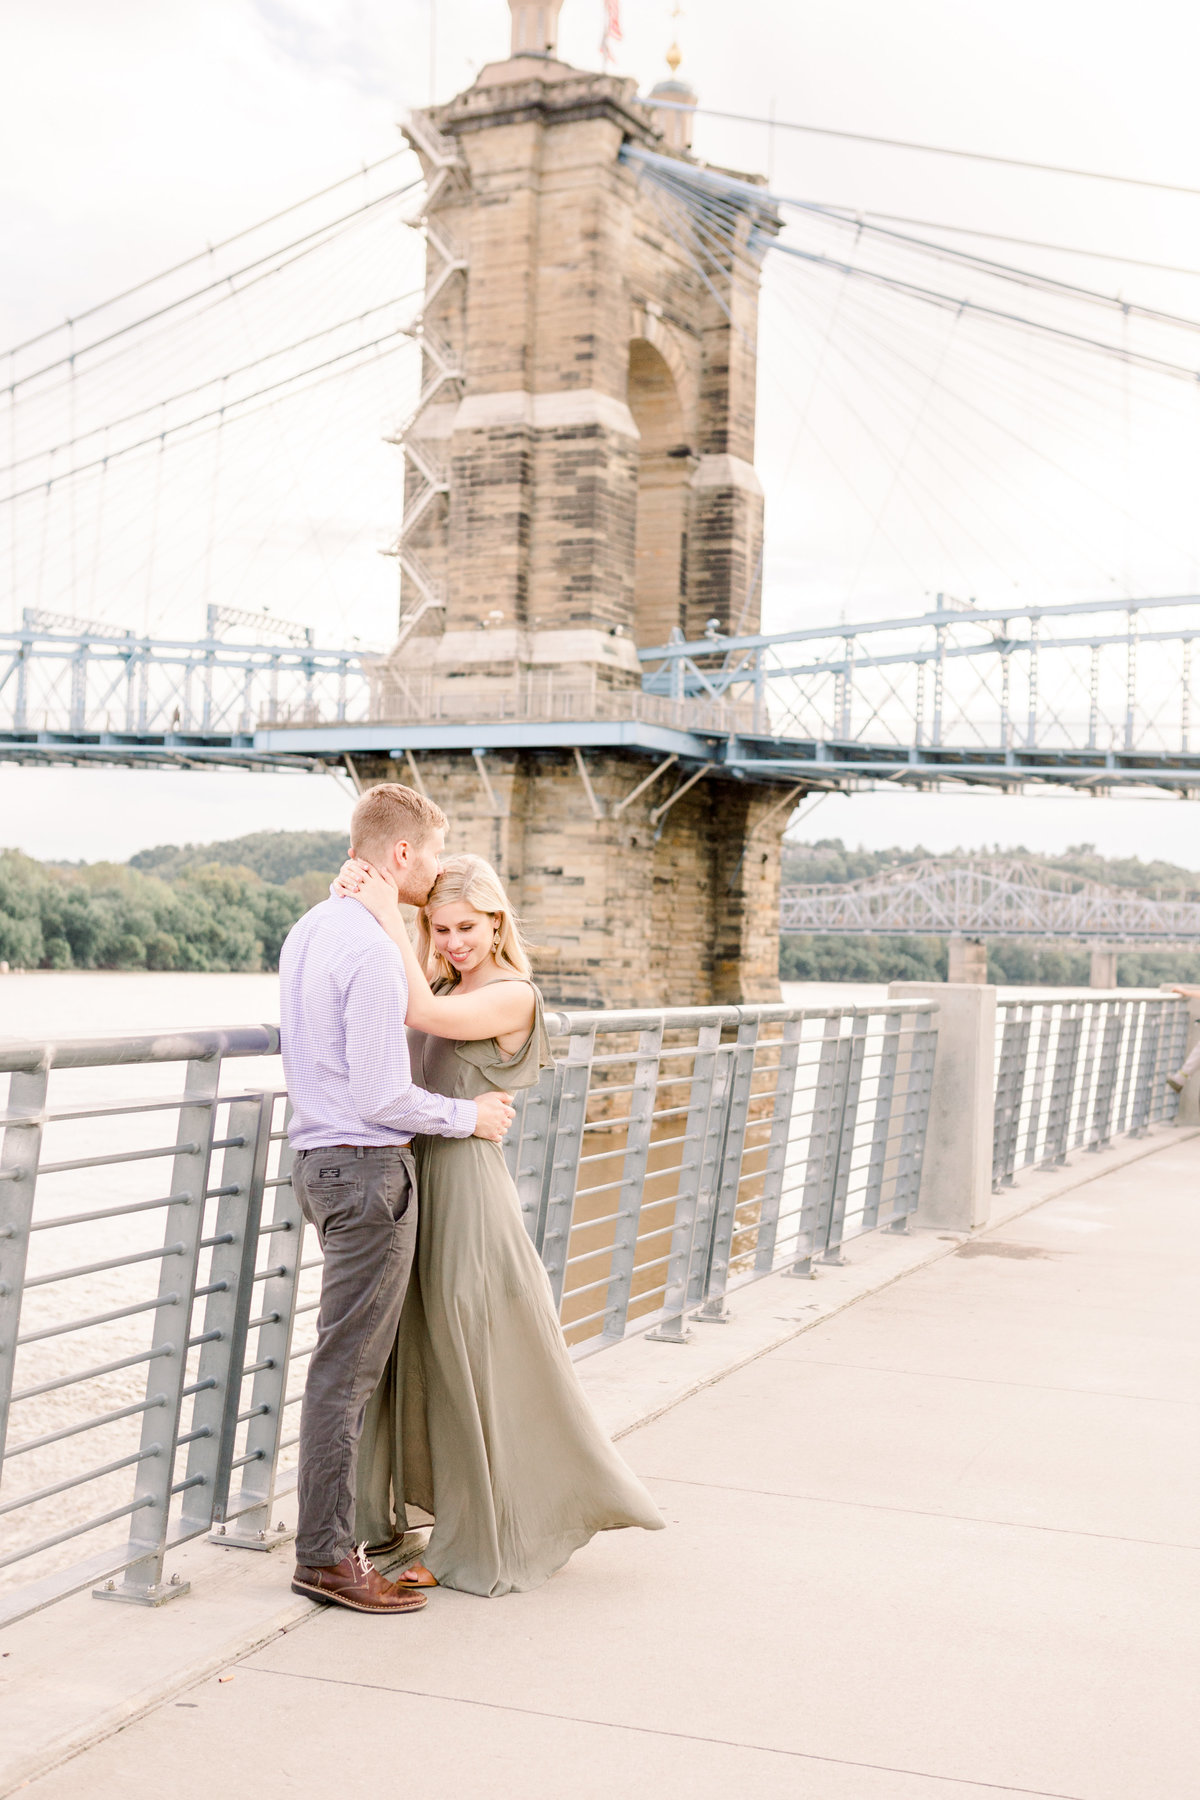 Cincinnati-engagement-wedding-photographer-eden-park-art-museum-smale-riverfront034